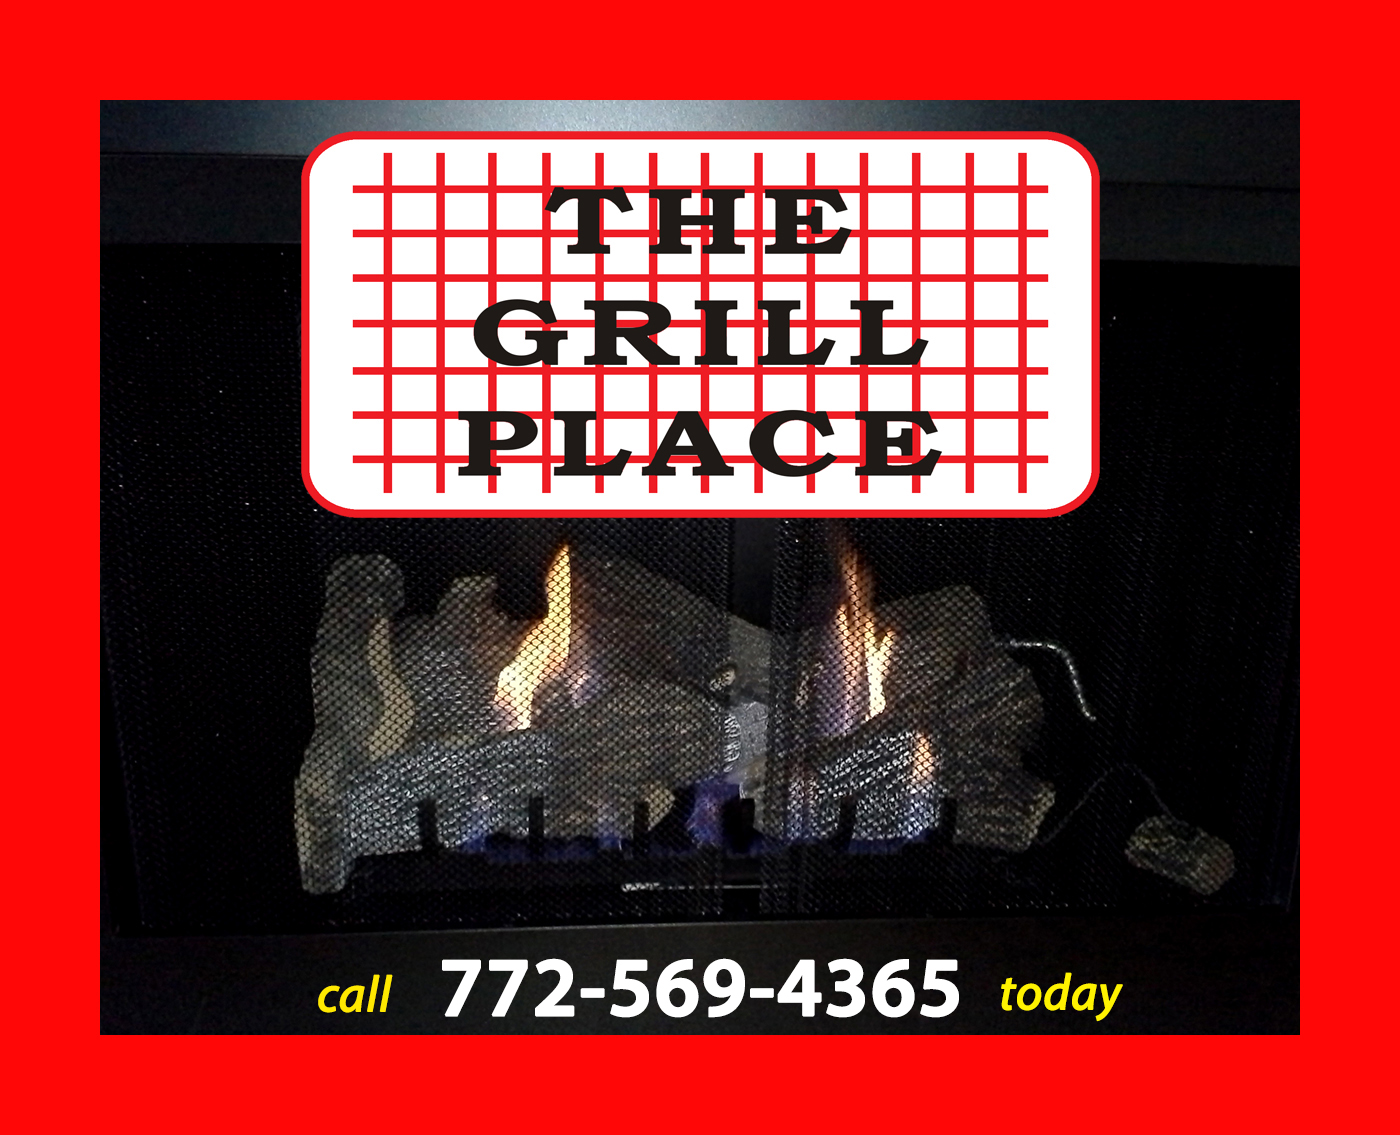 Visit The Grill Place in Vero Beach